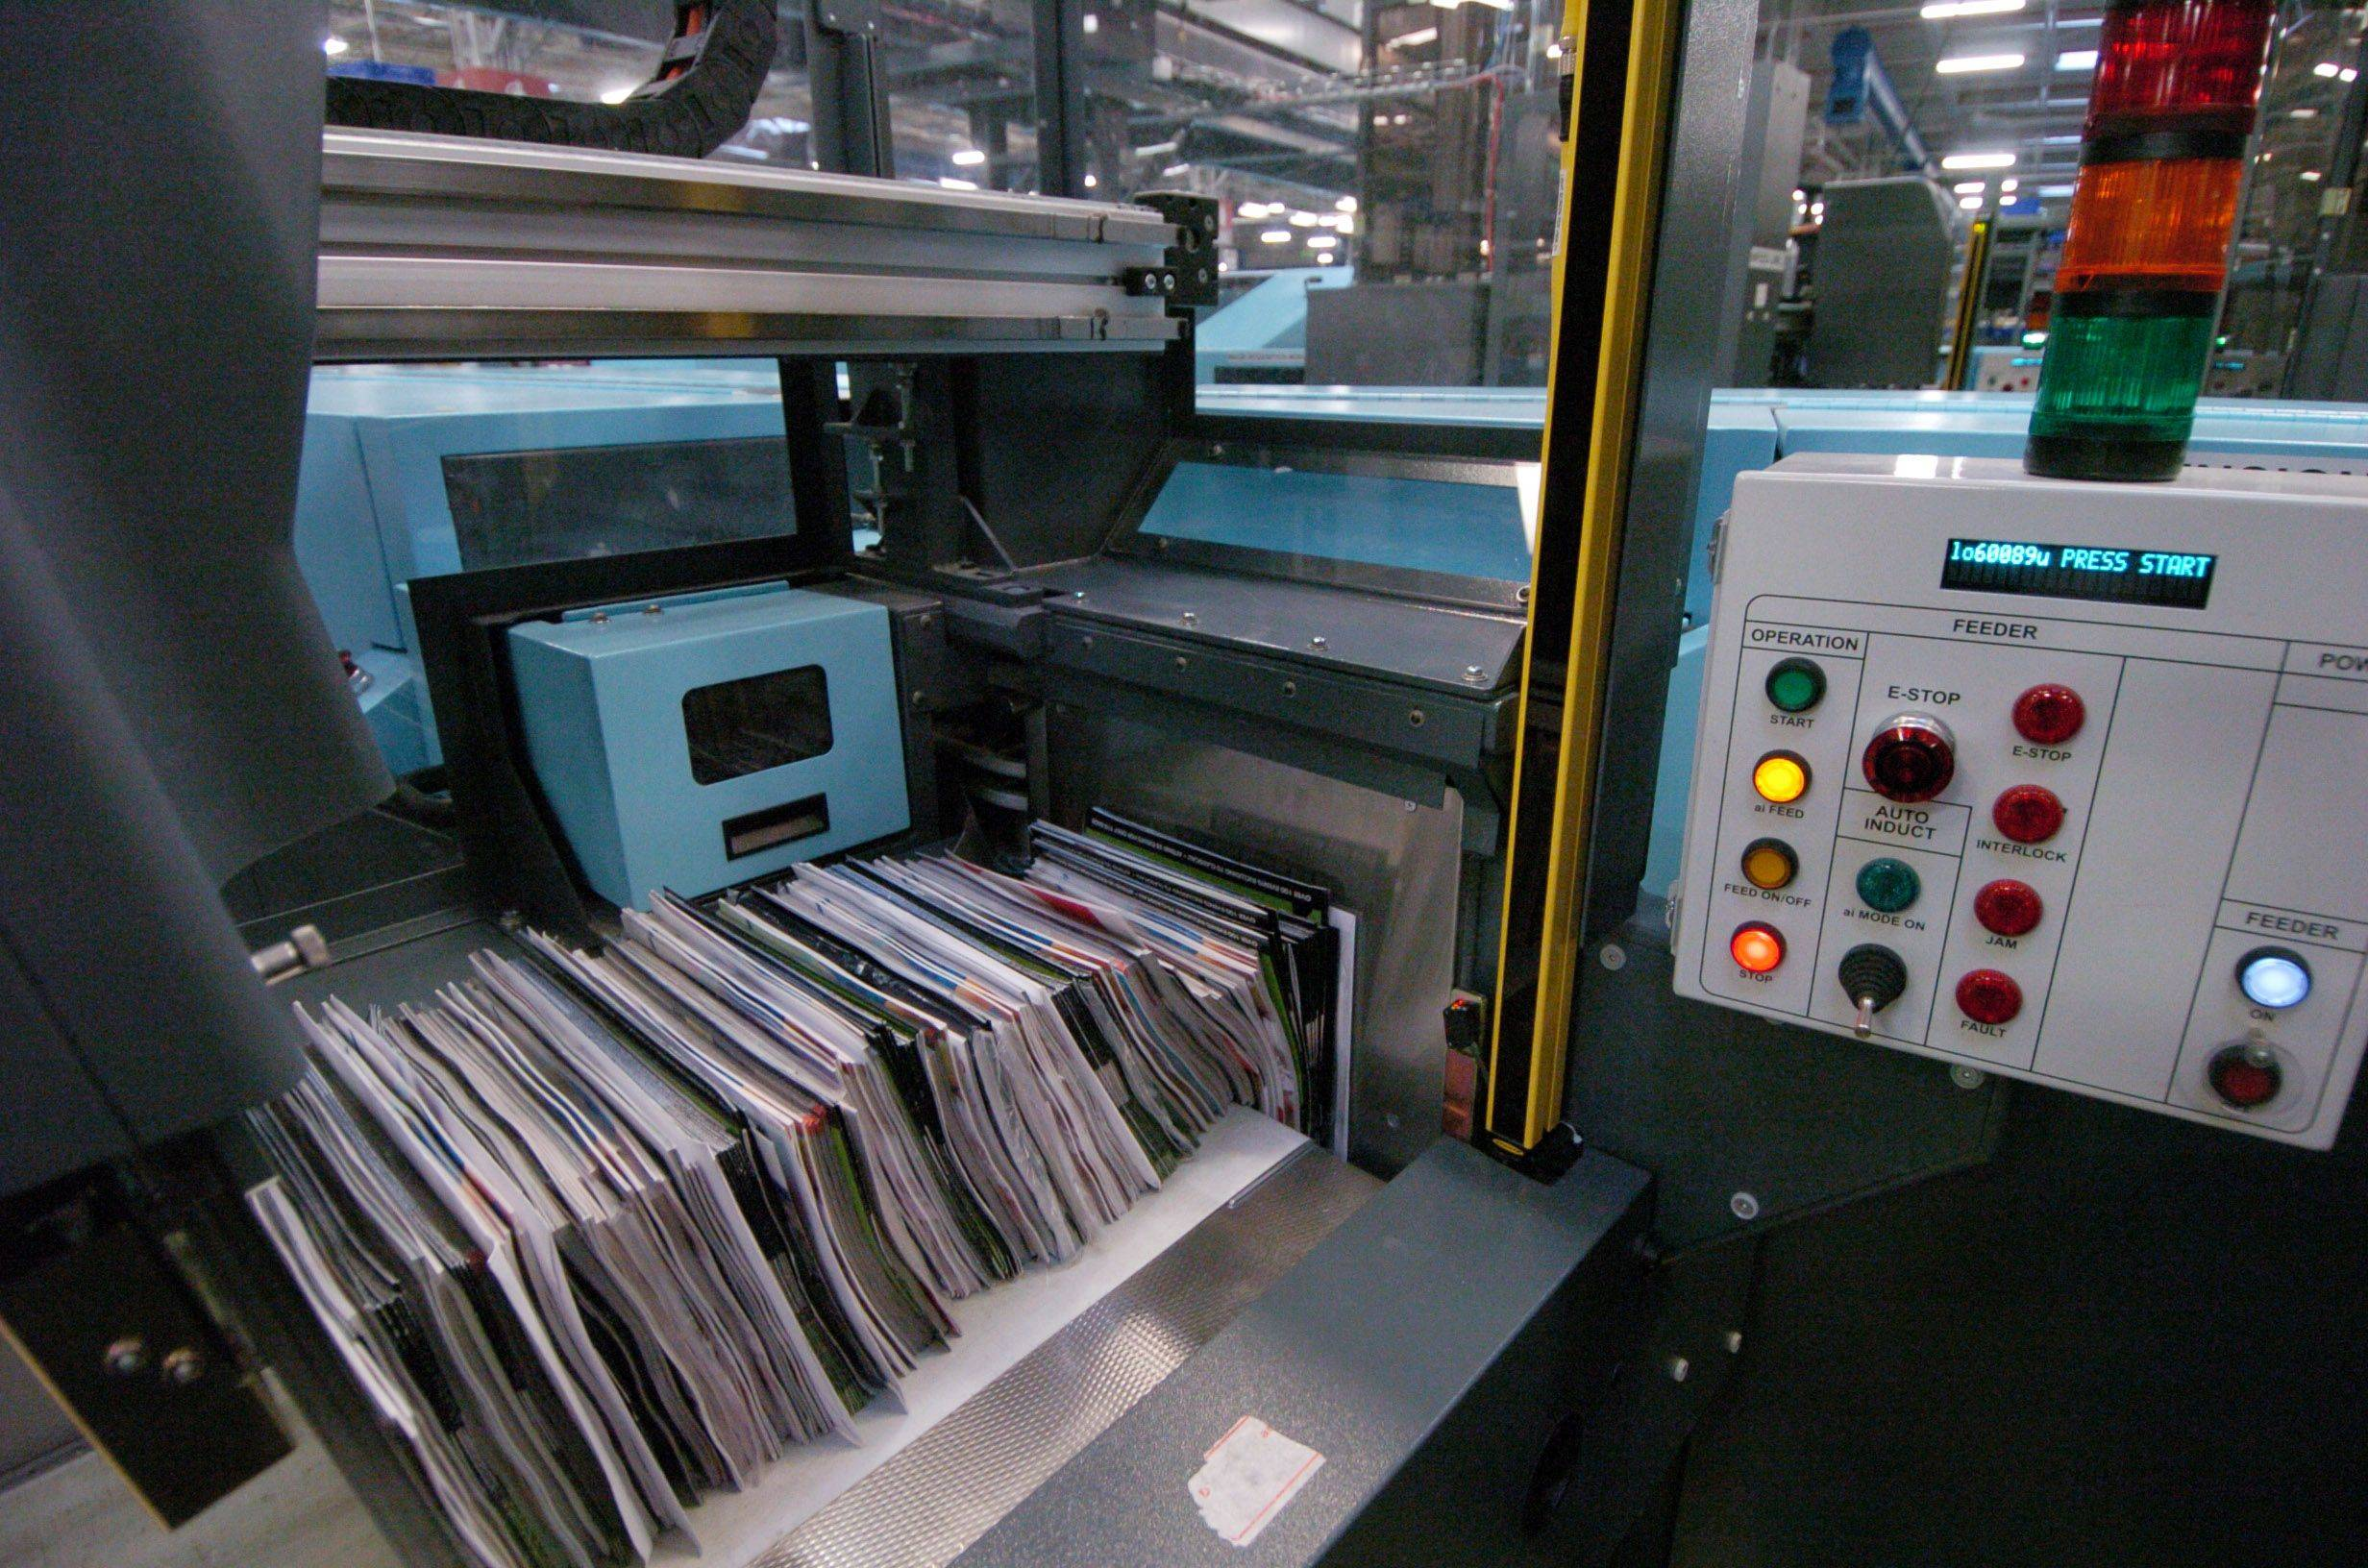 A new flat sequencing system machine processes large envelopes, magazines and catalogs at the Palatine Processing and Distribution Center on Northwest Highway.